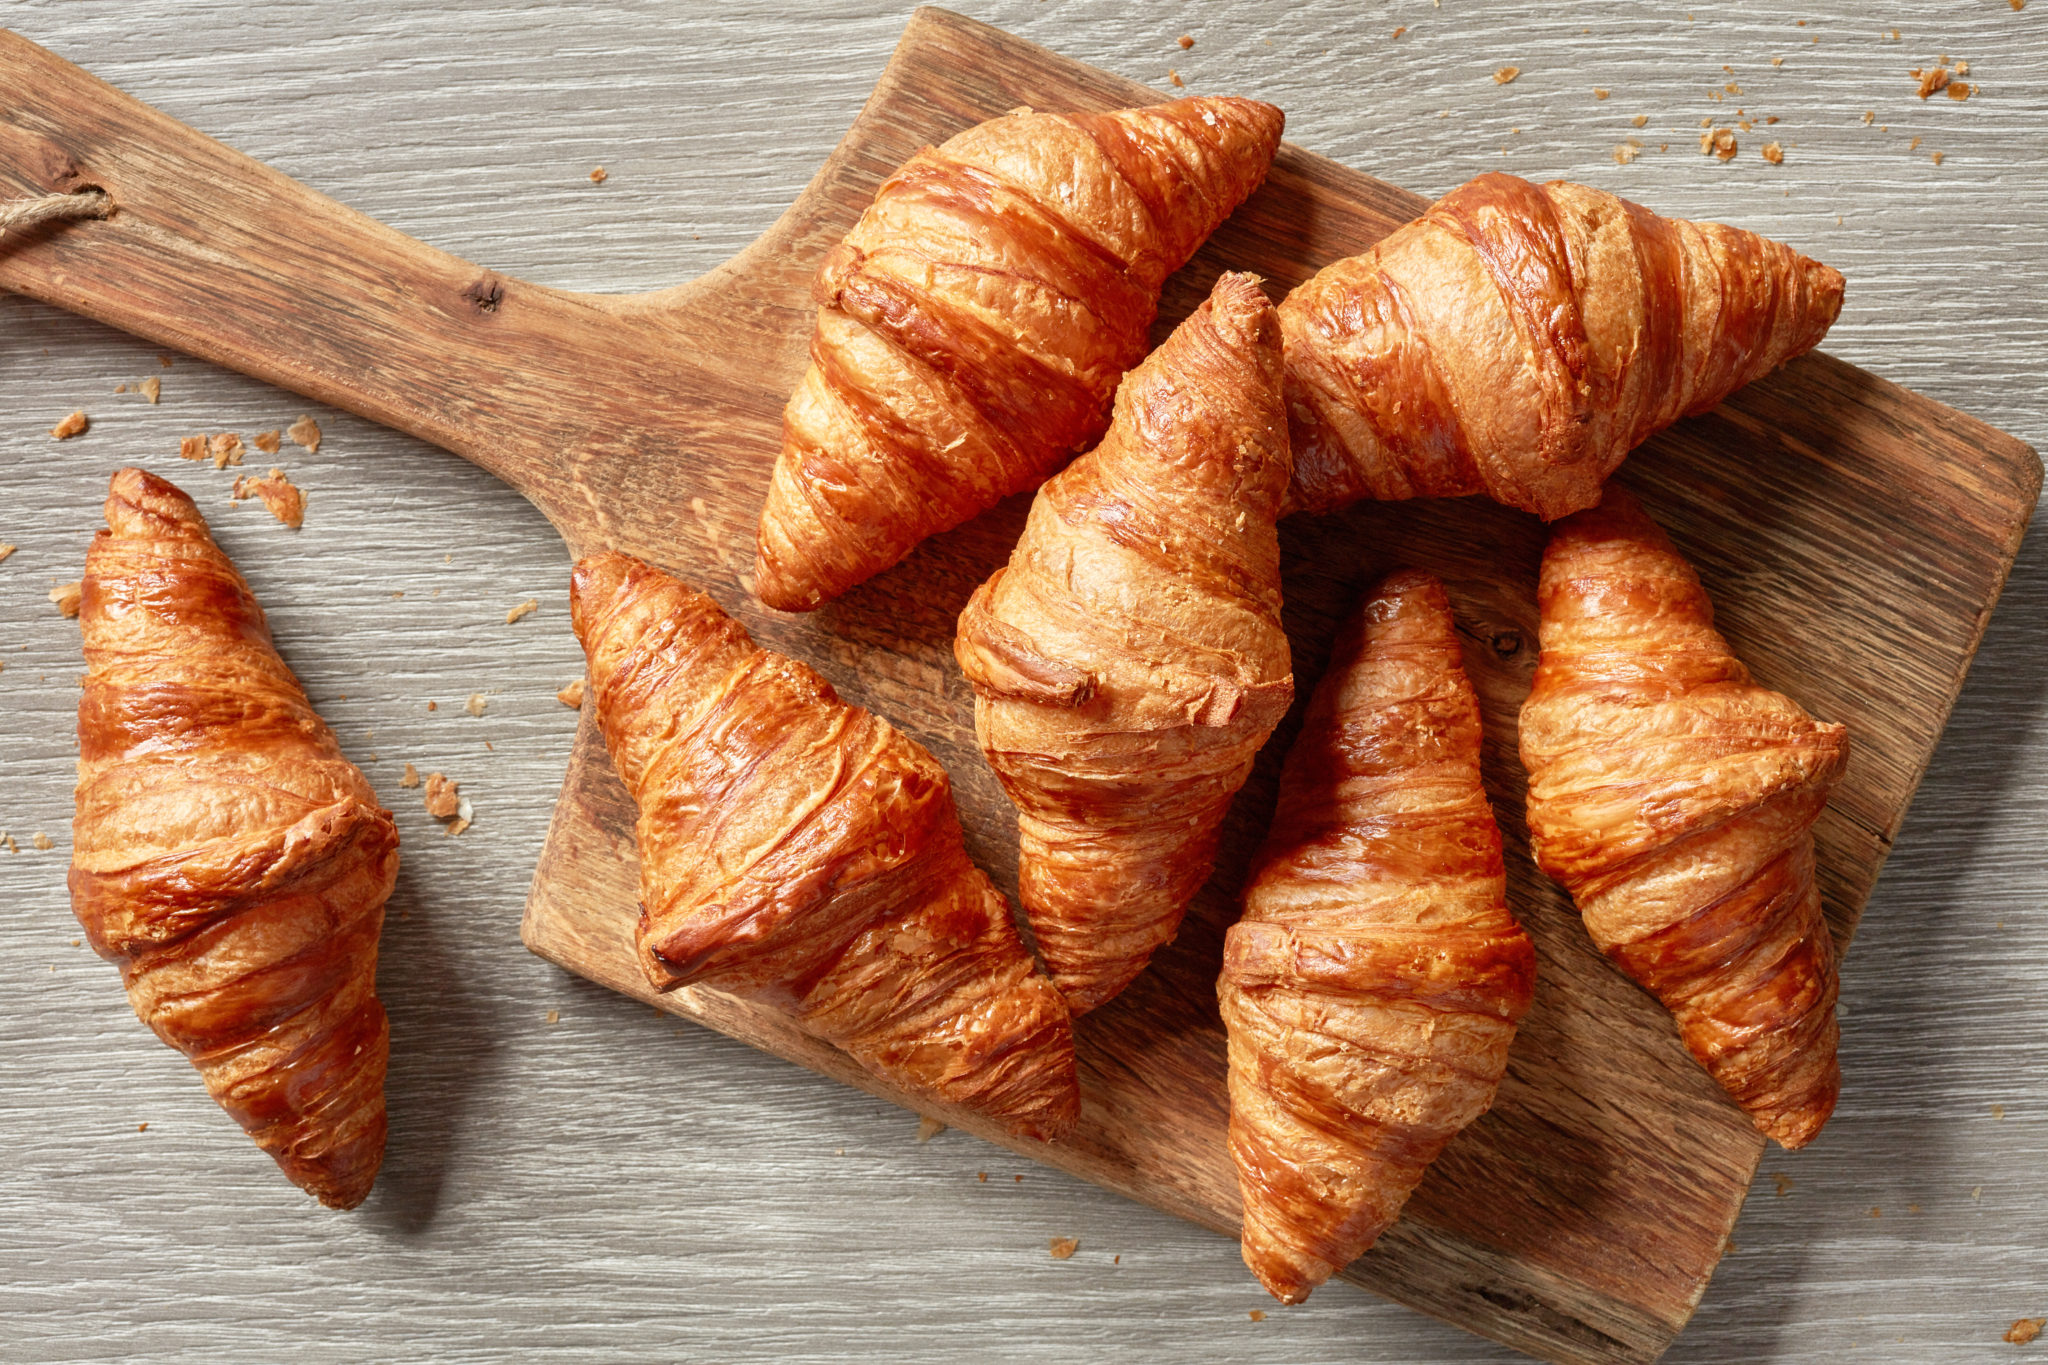 A few croissants on a wood spatula.